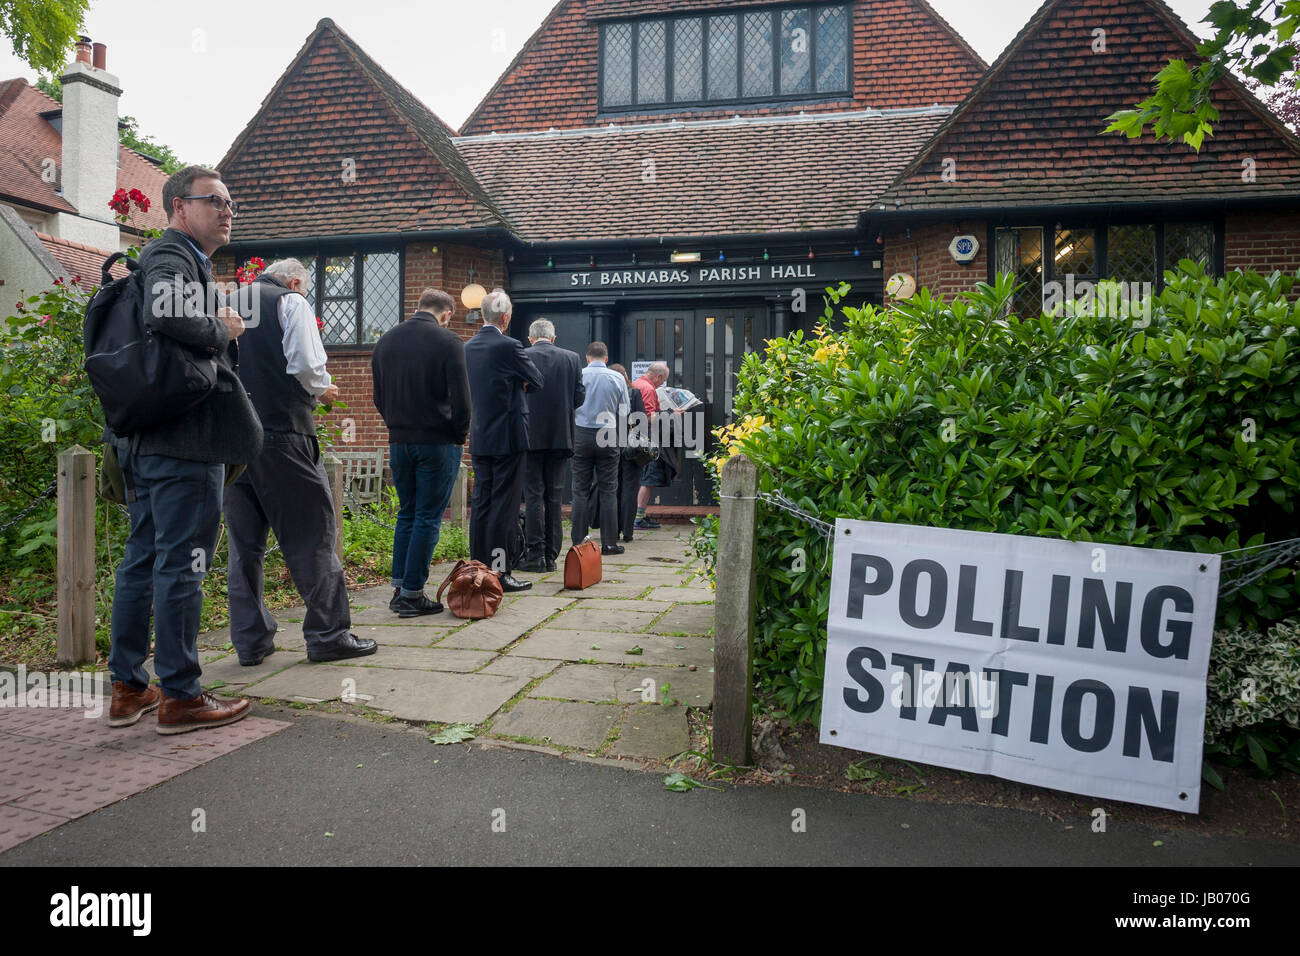 london-8th-june-2017-early-voters-for-th